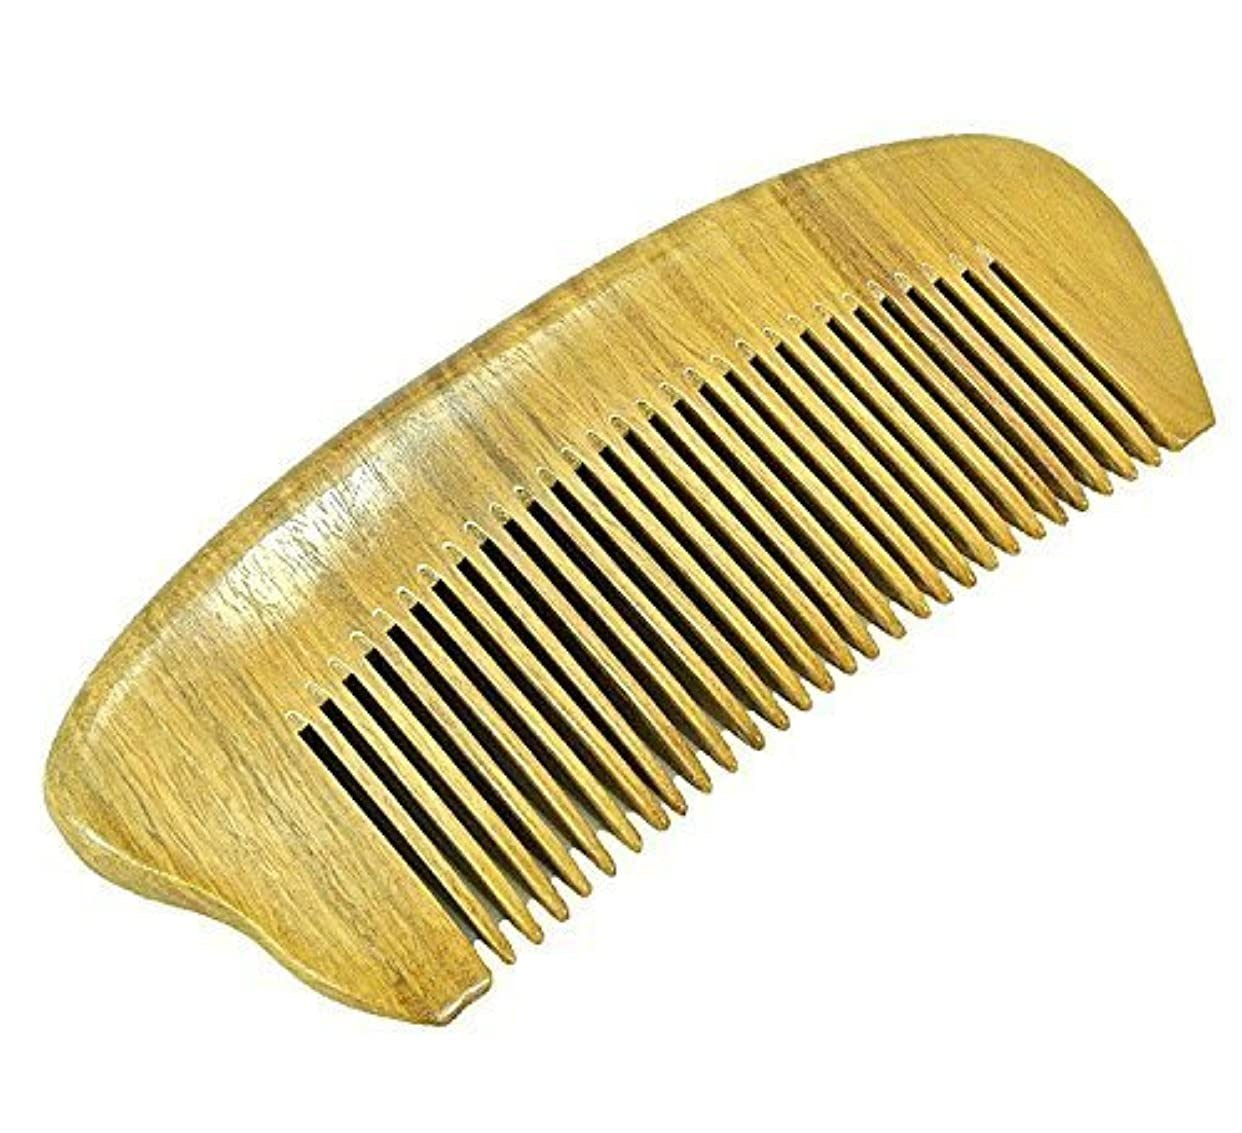 EQLEF? Green sandalwood no static handmade comb,Pocket comb (short) [並行輸入品]